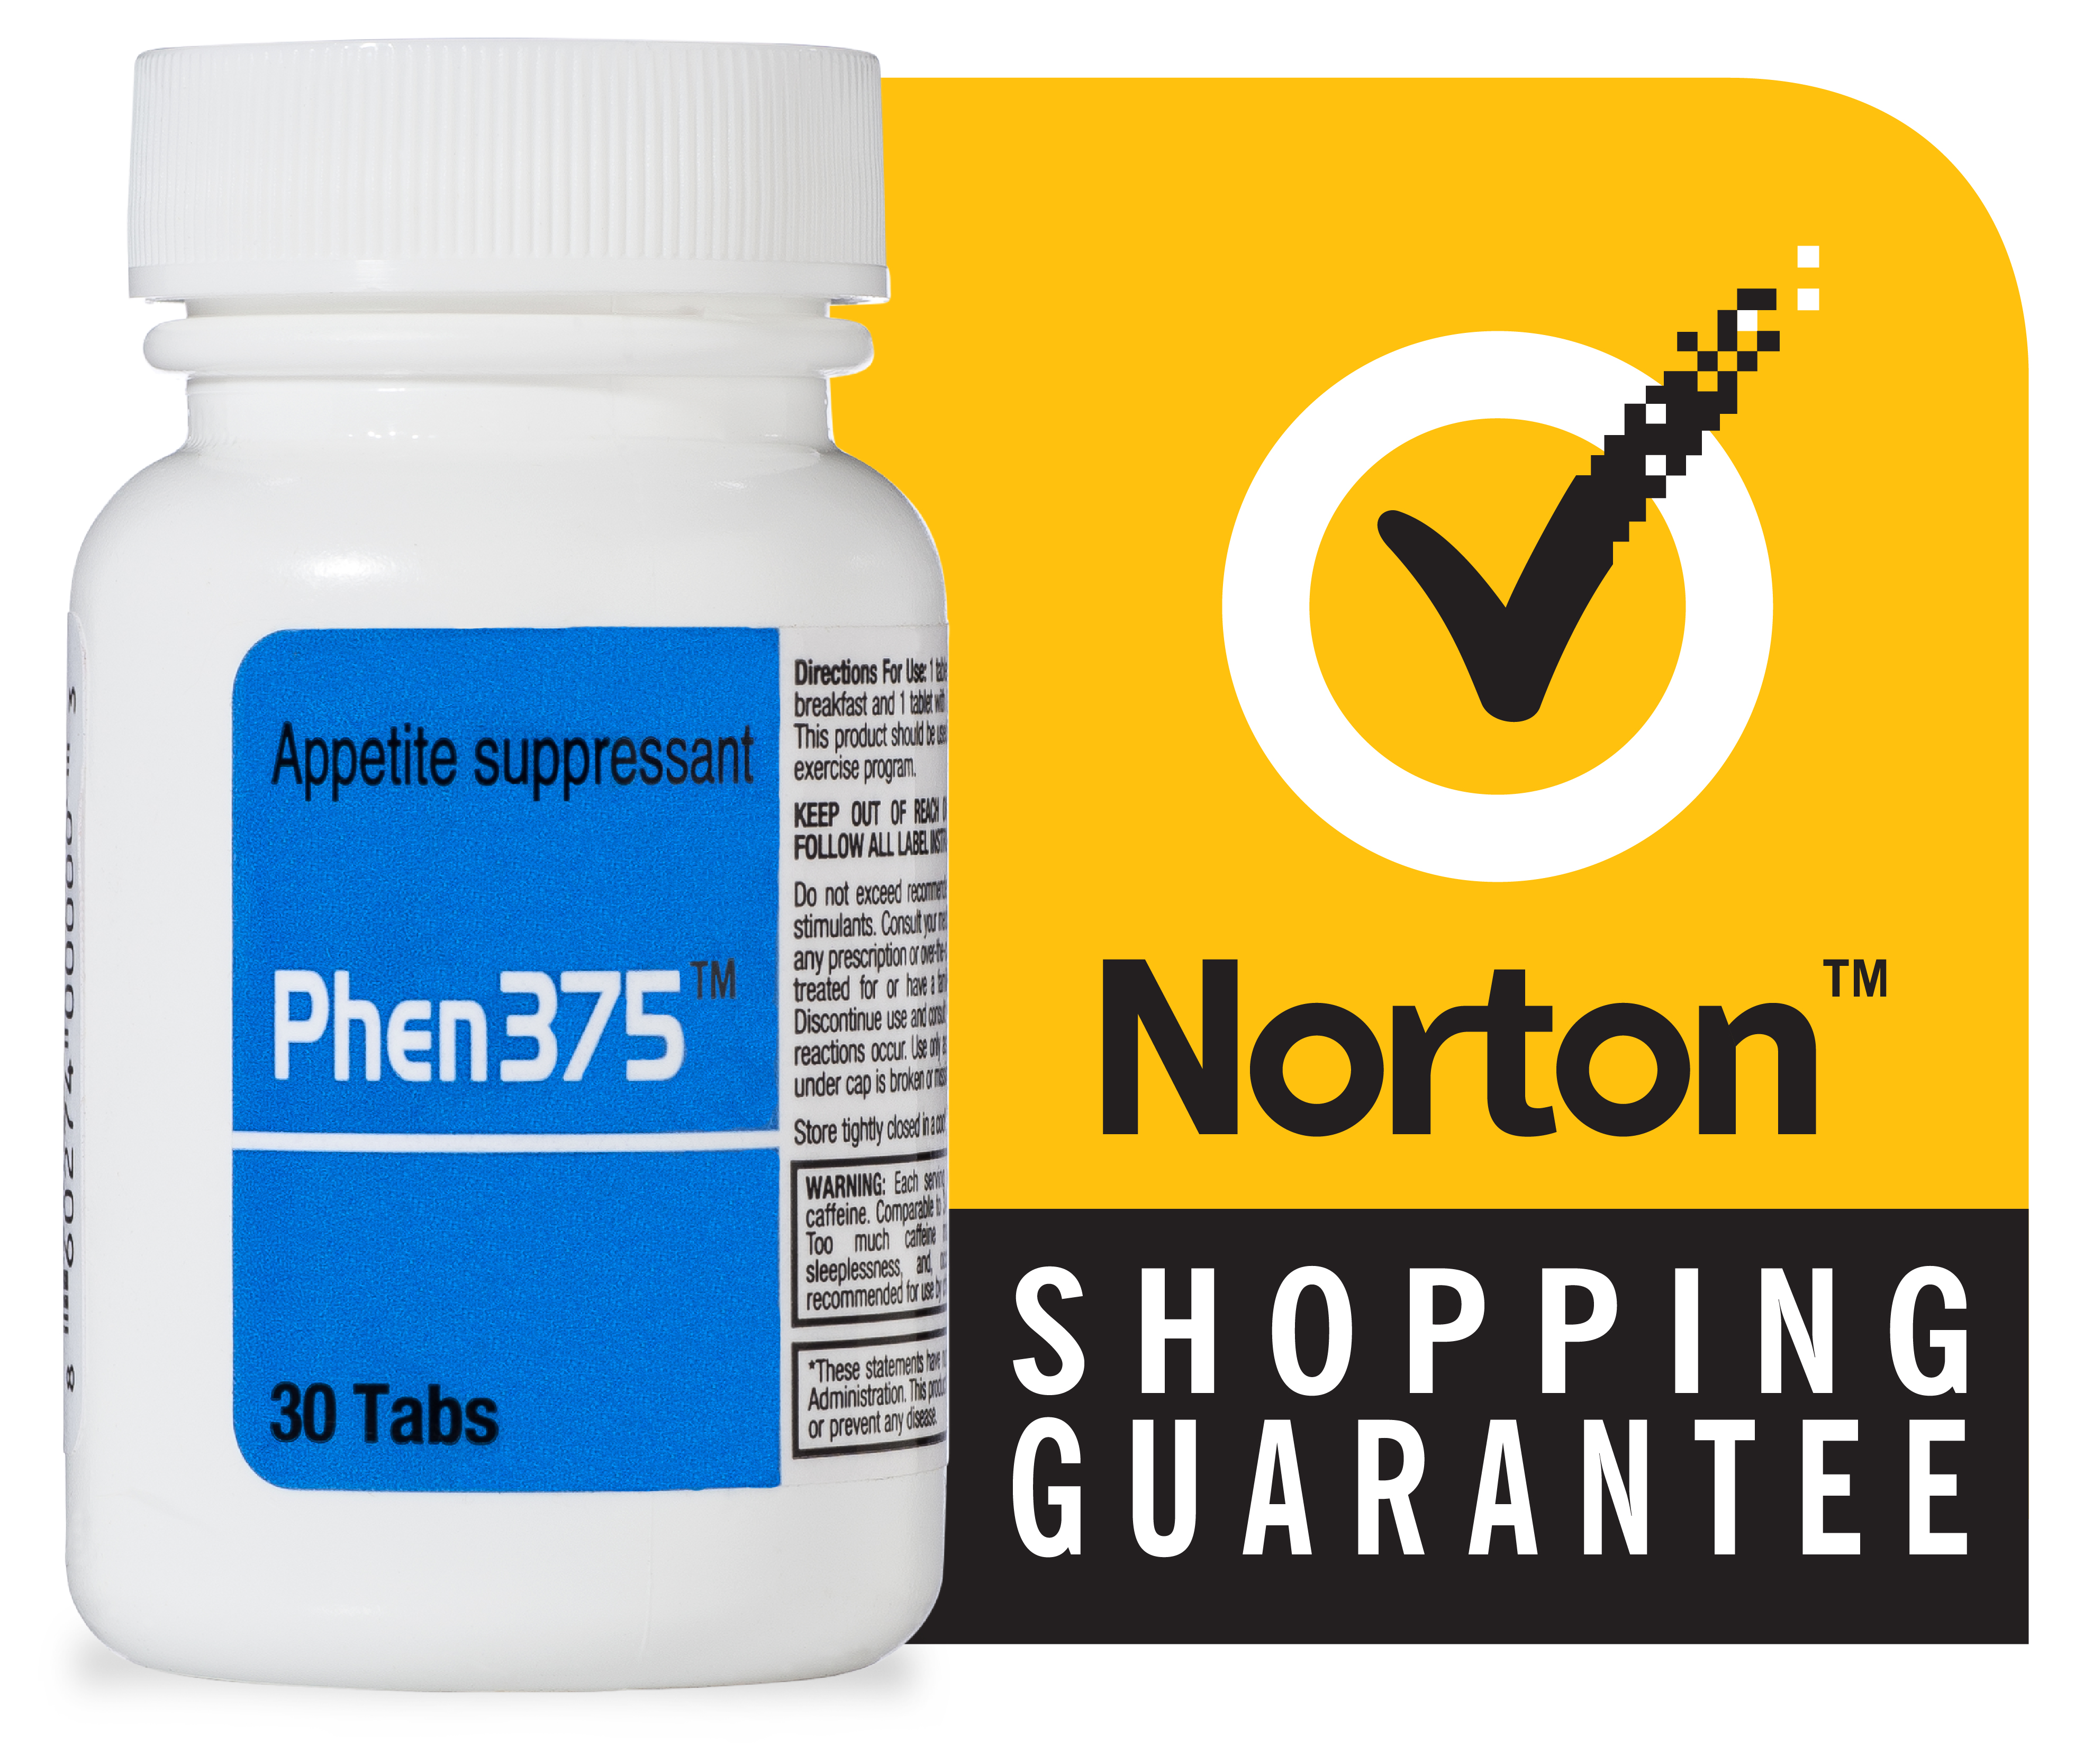 phen375 for sale